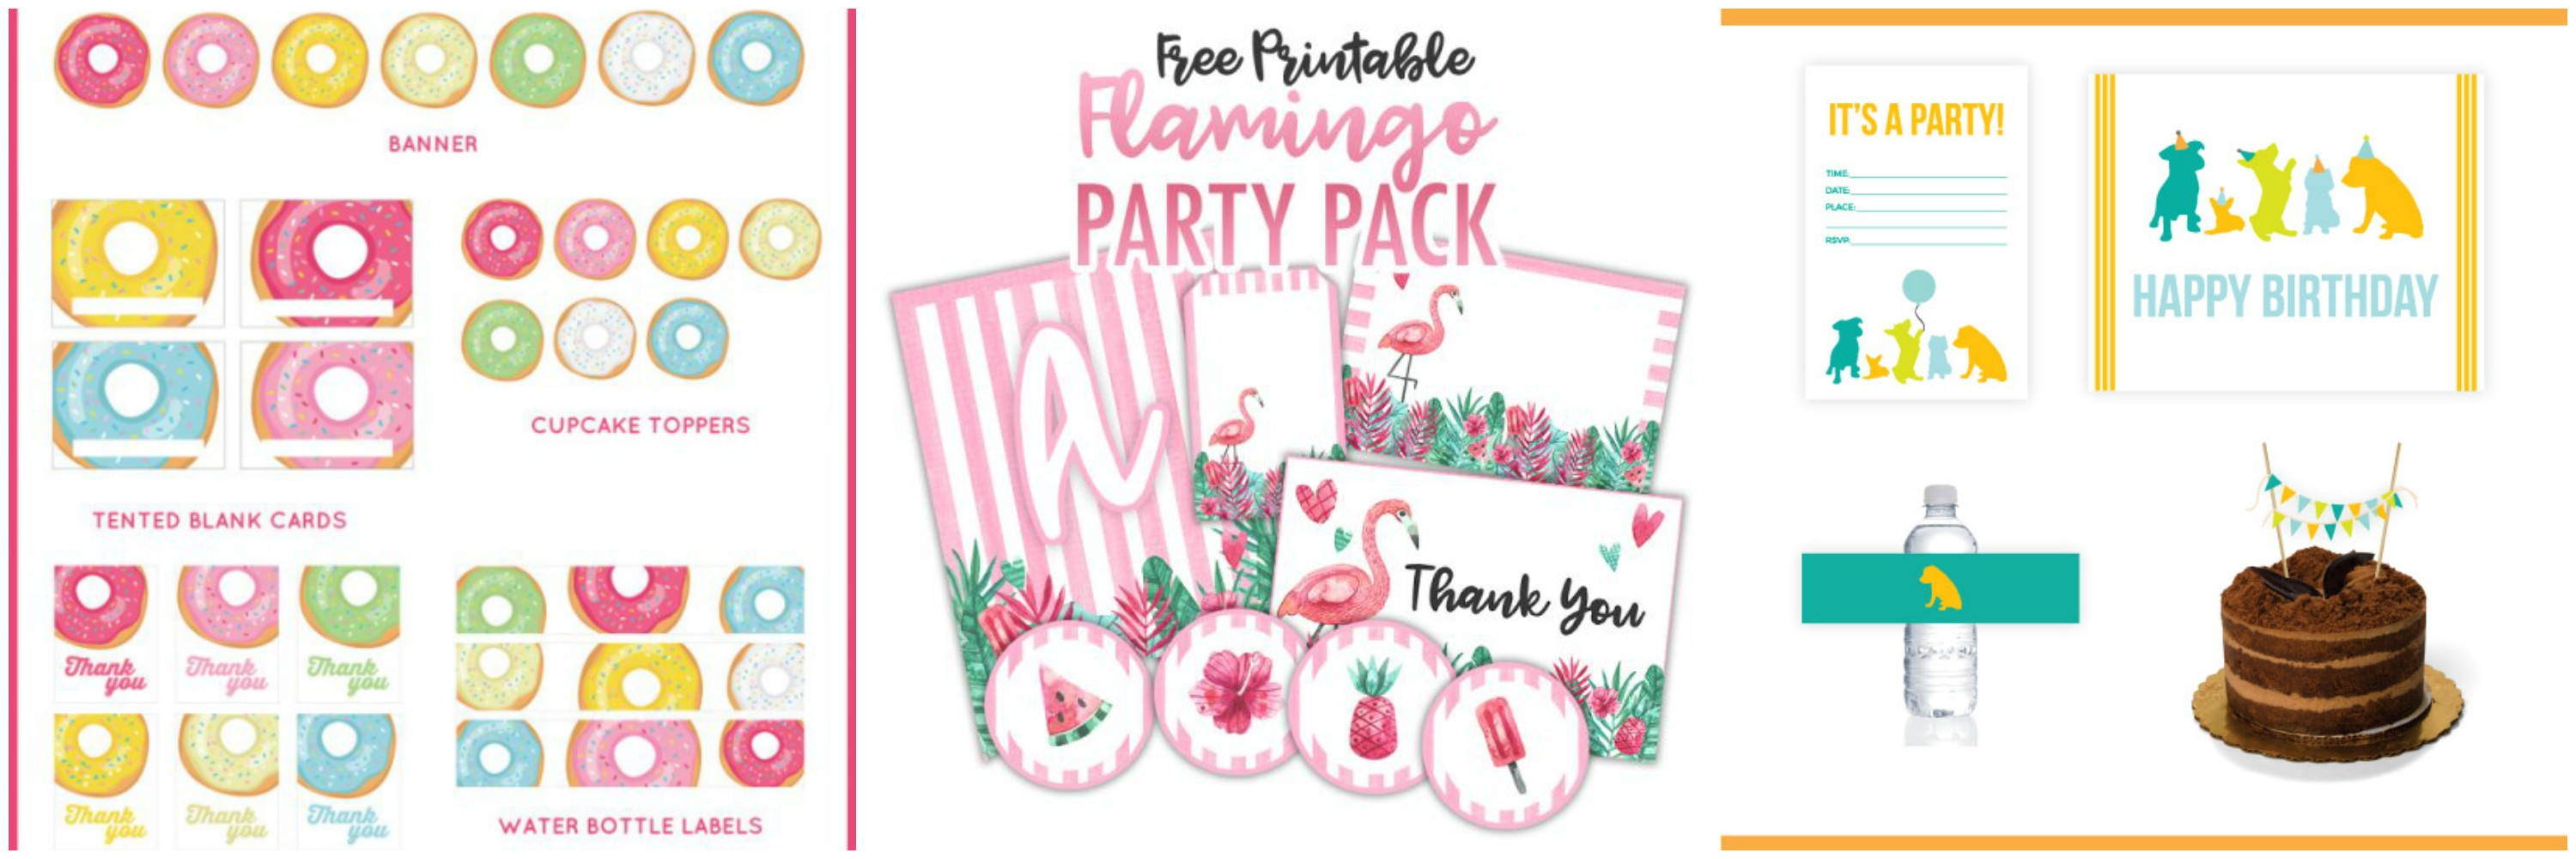 printable party packs for kids birthday parties